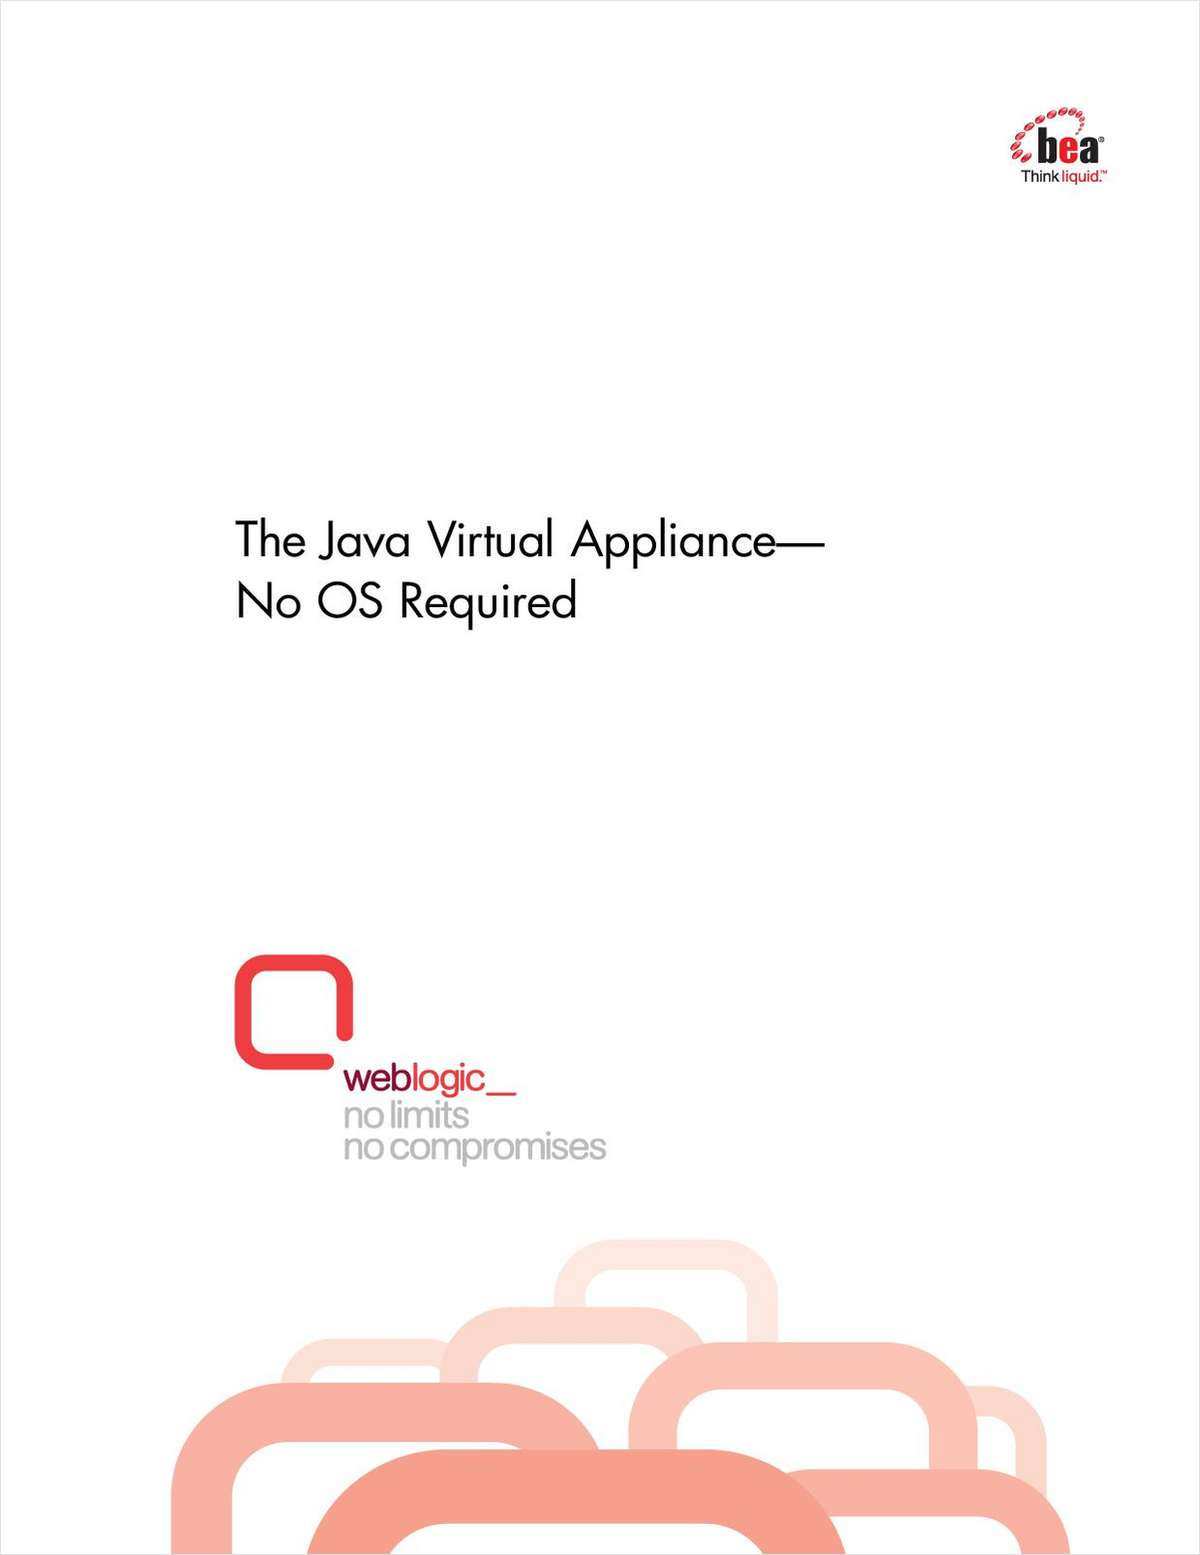 The Java Virtual Appliance—No OS Required